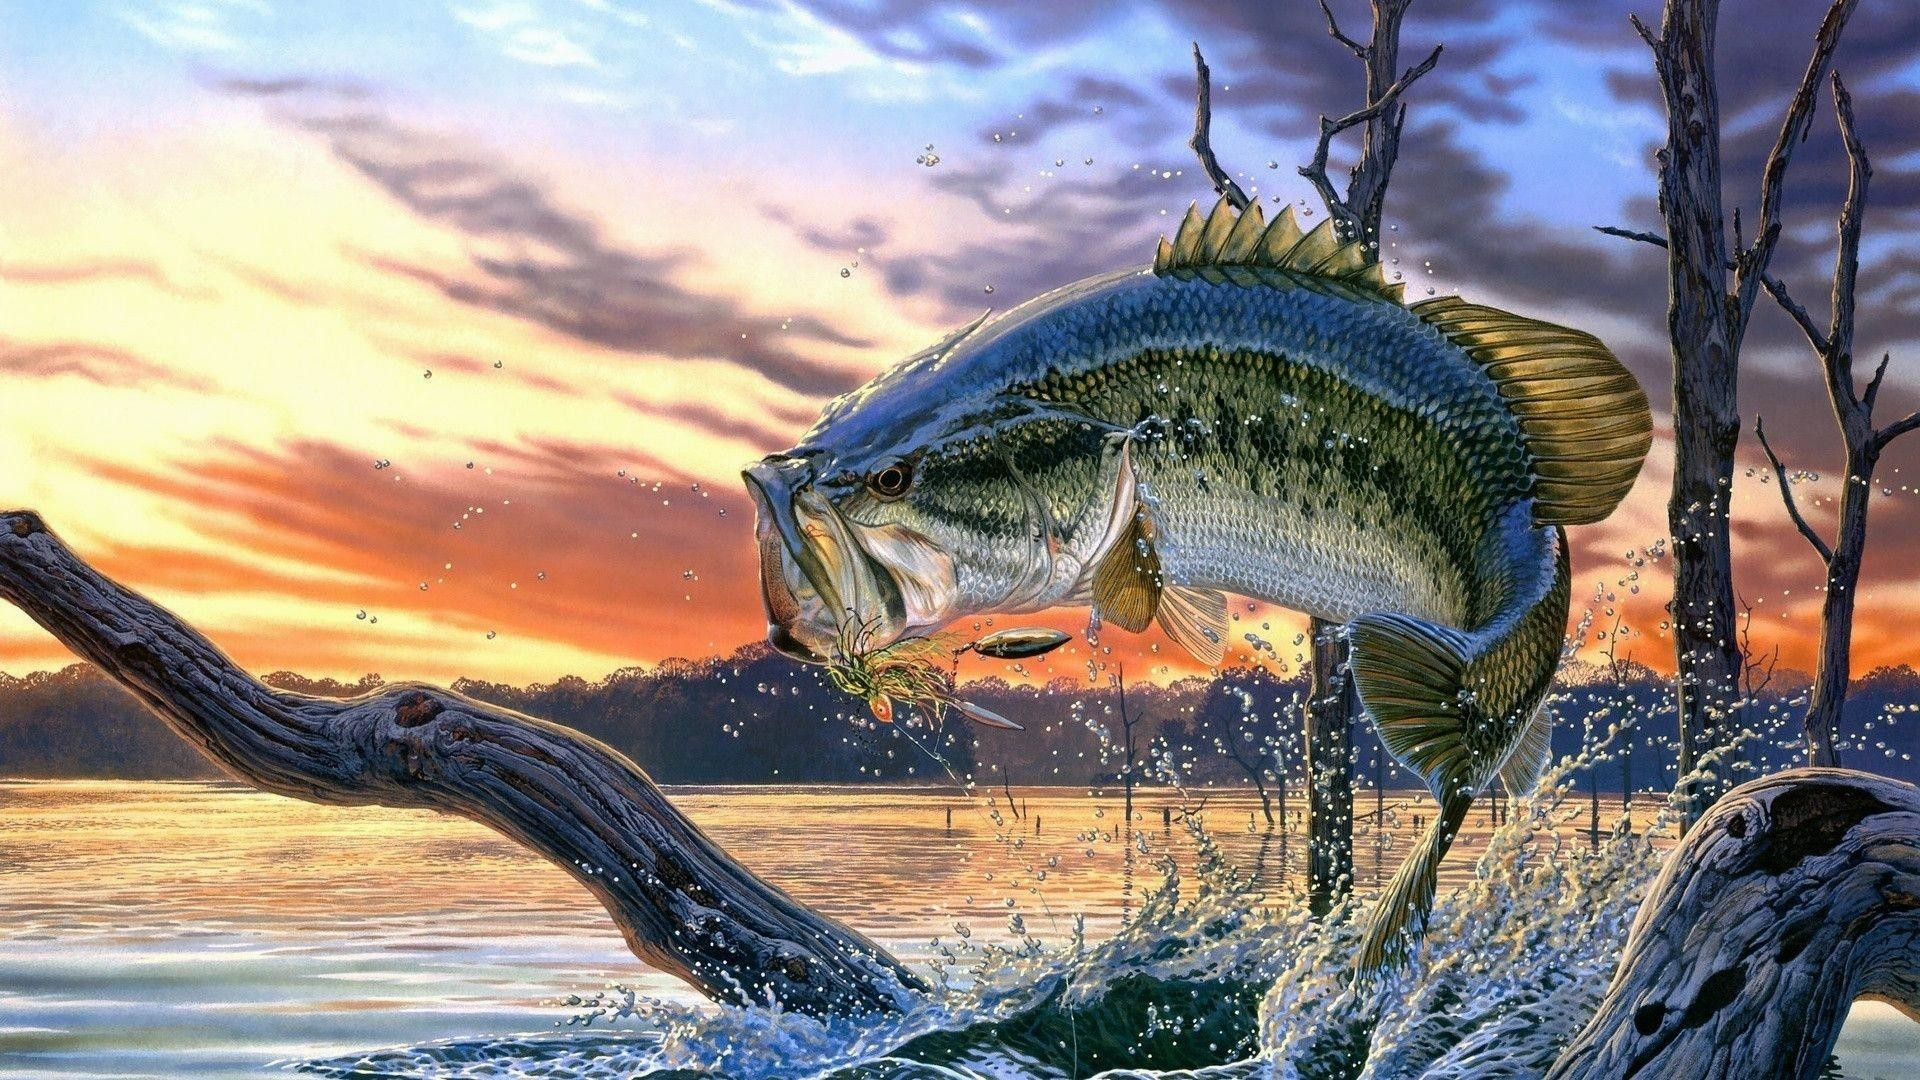 Fishing wallpaper iphone